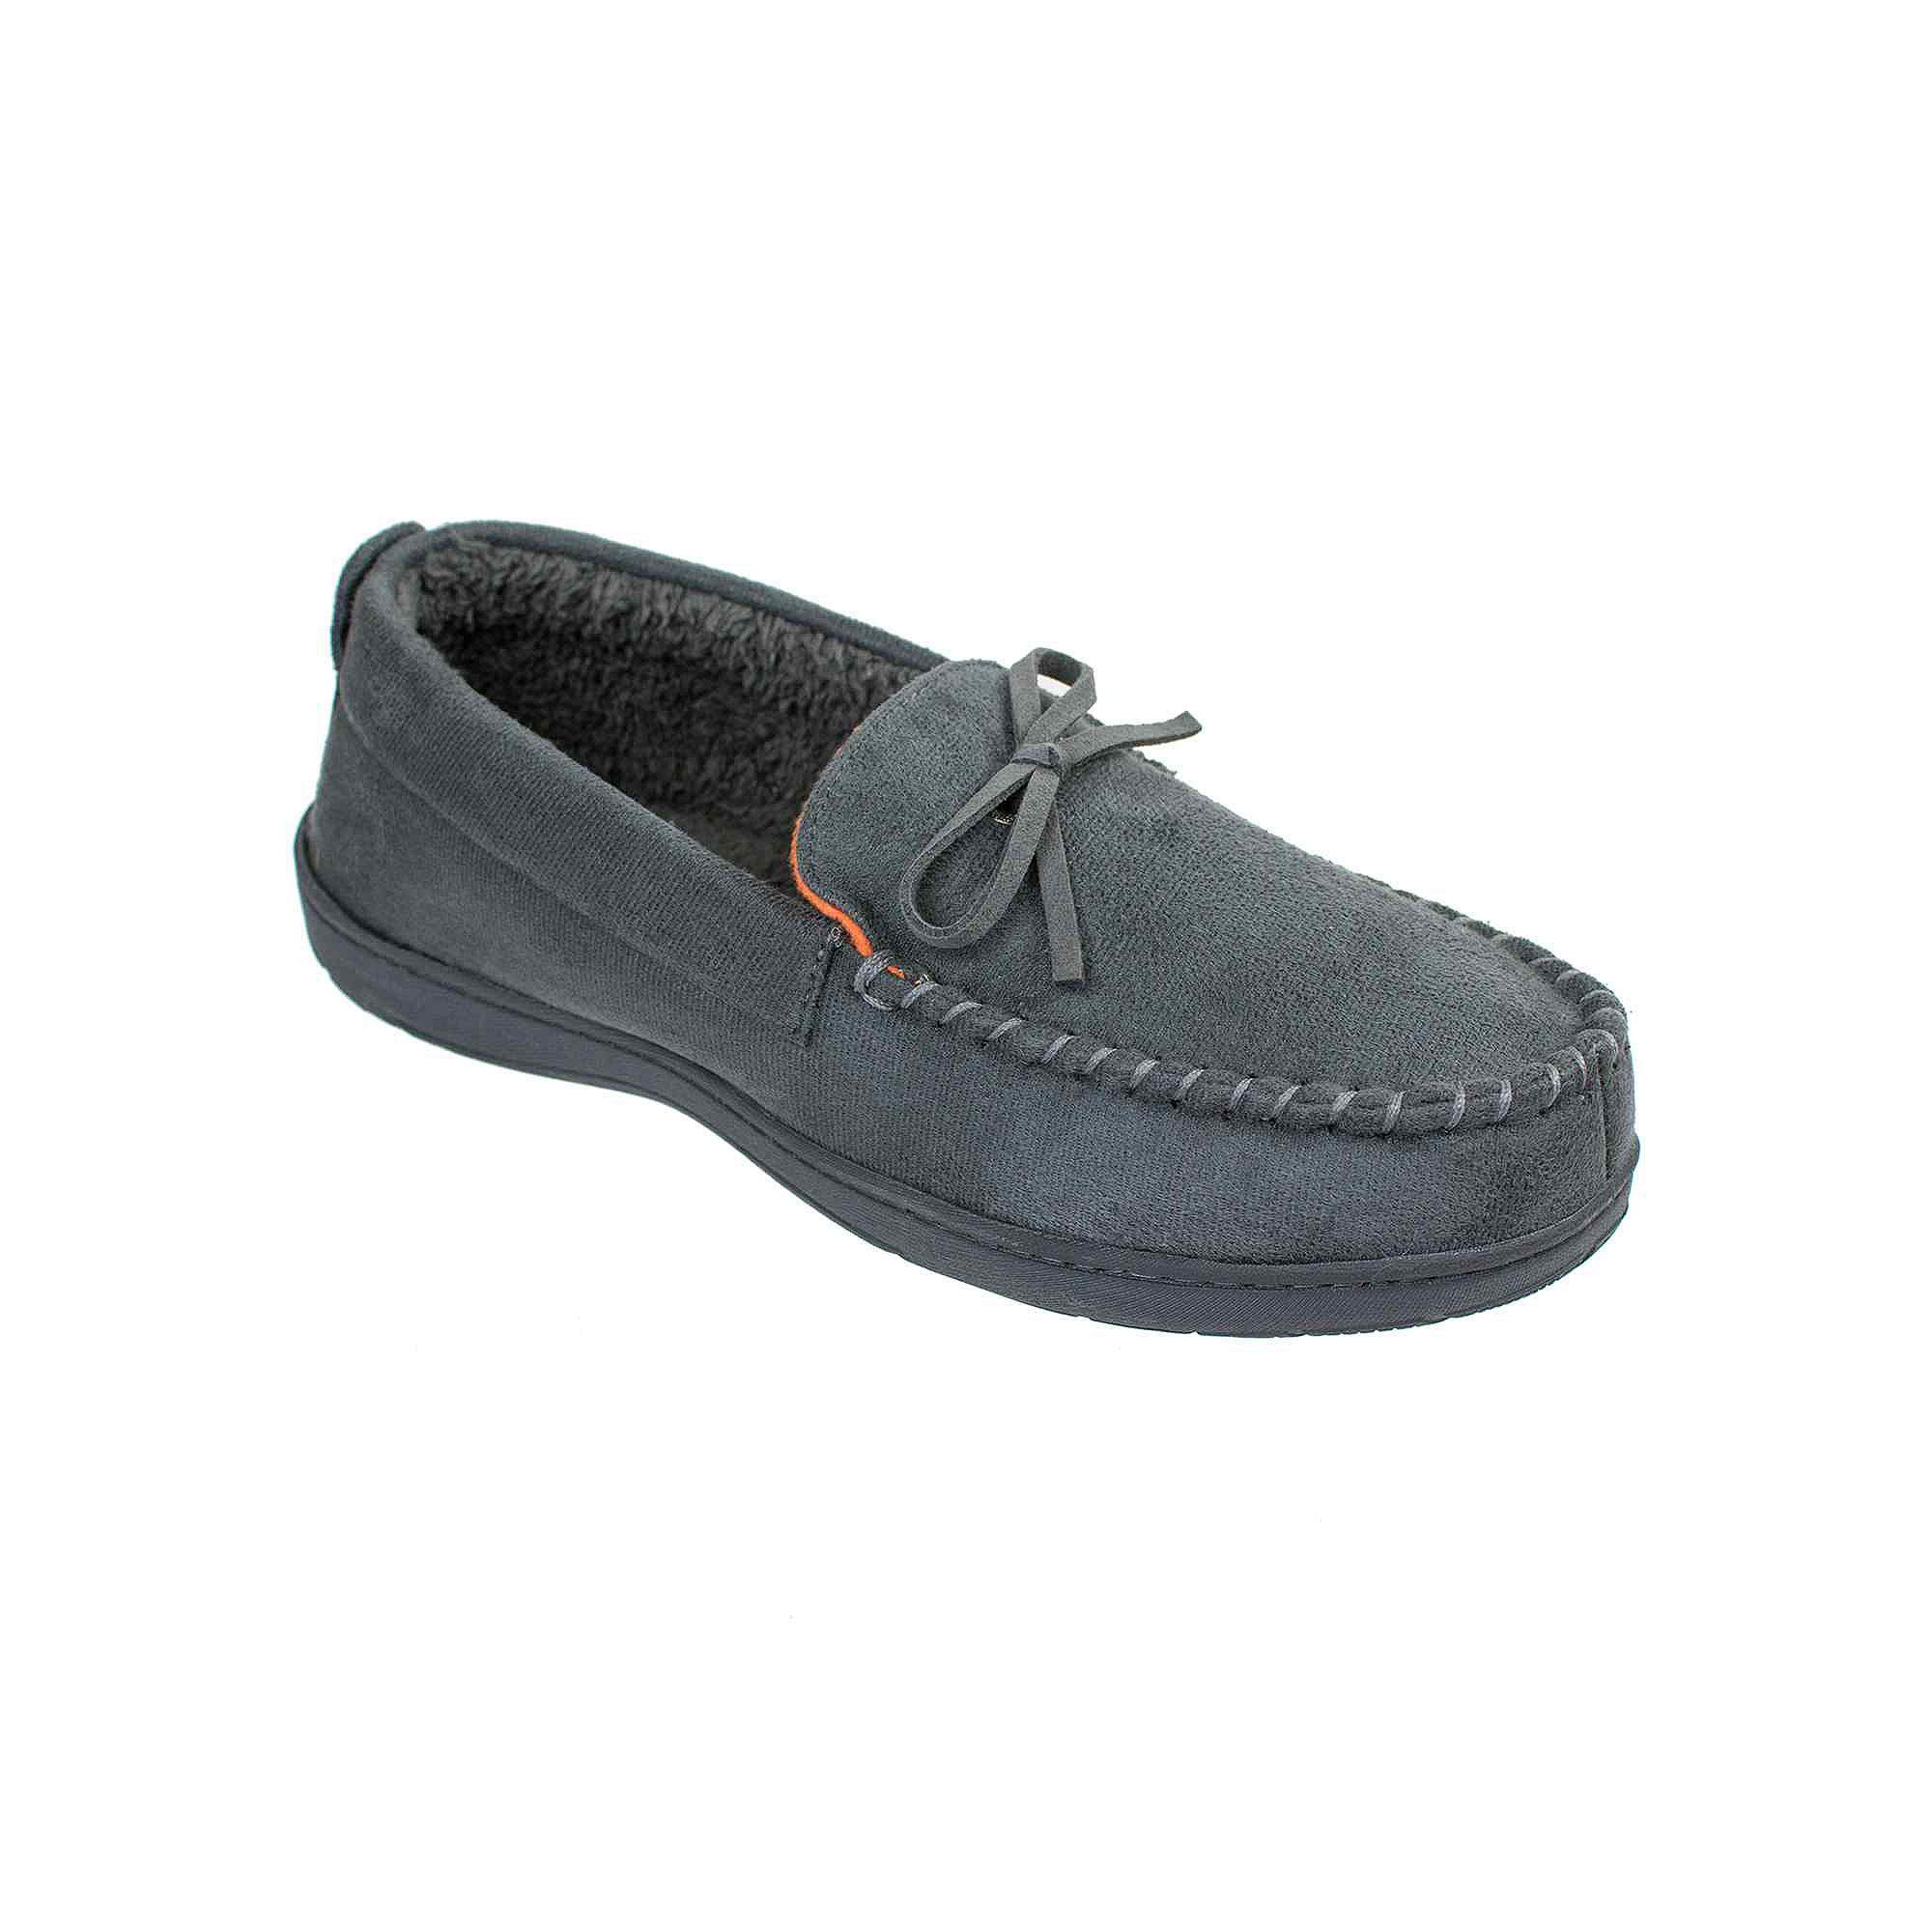 76a75dc3dea0b ... UPC 090464434329 product image for Dockers Boater-Style Moccasin  Slippers